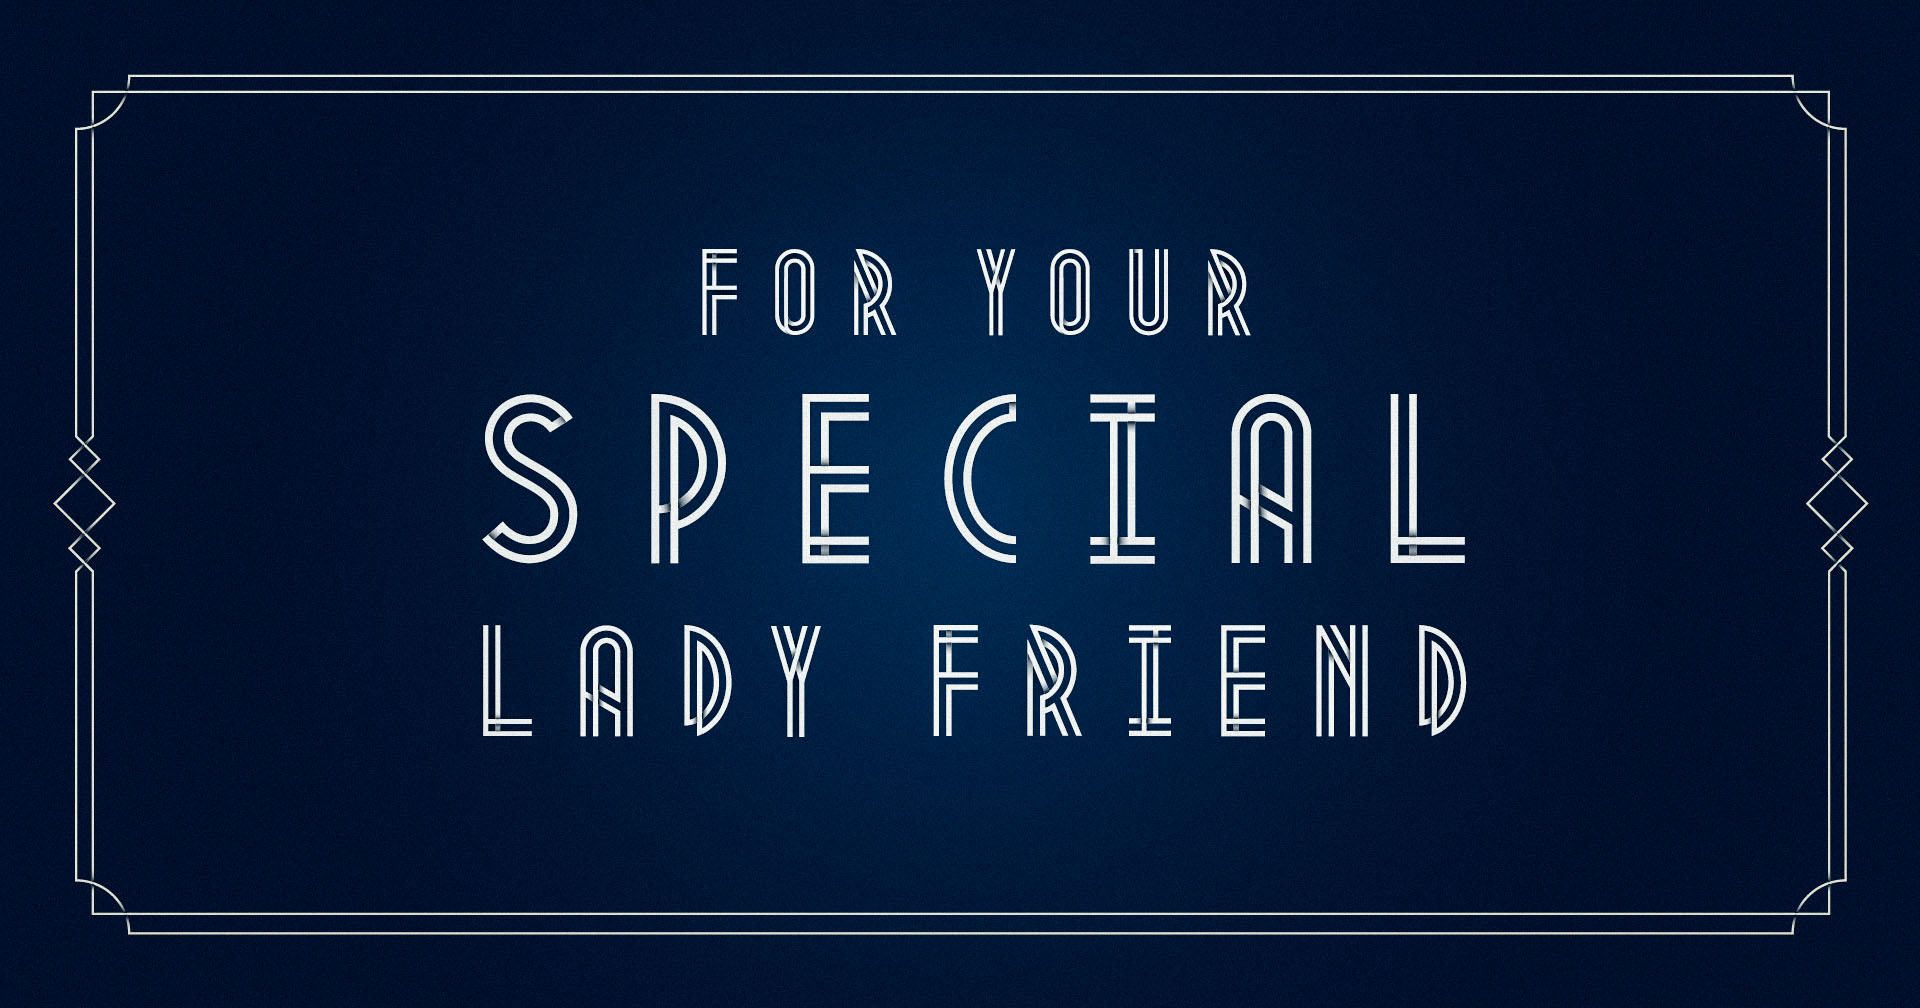 For Your Special Ladyfriend